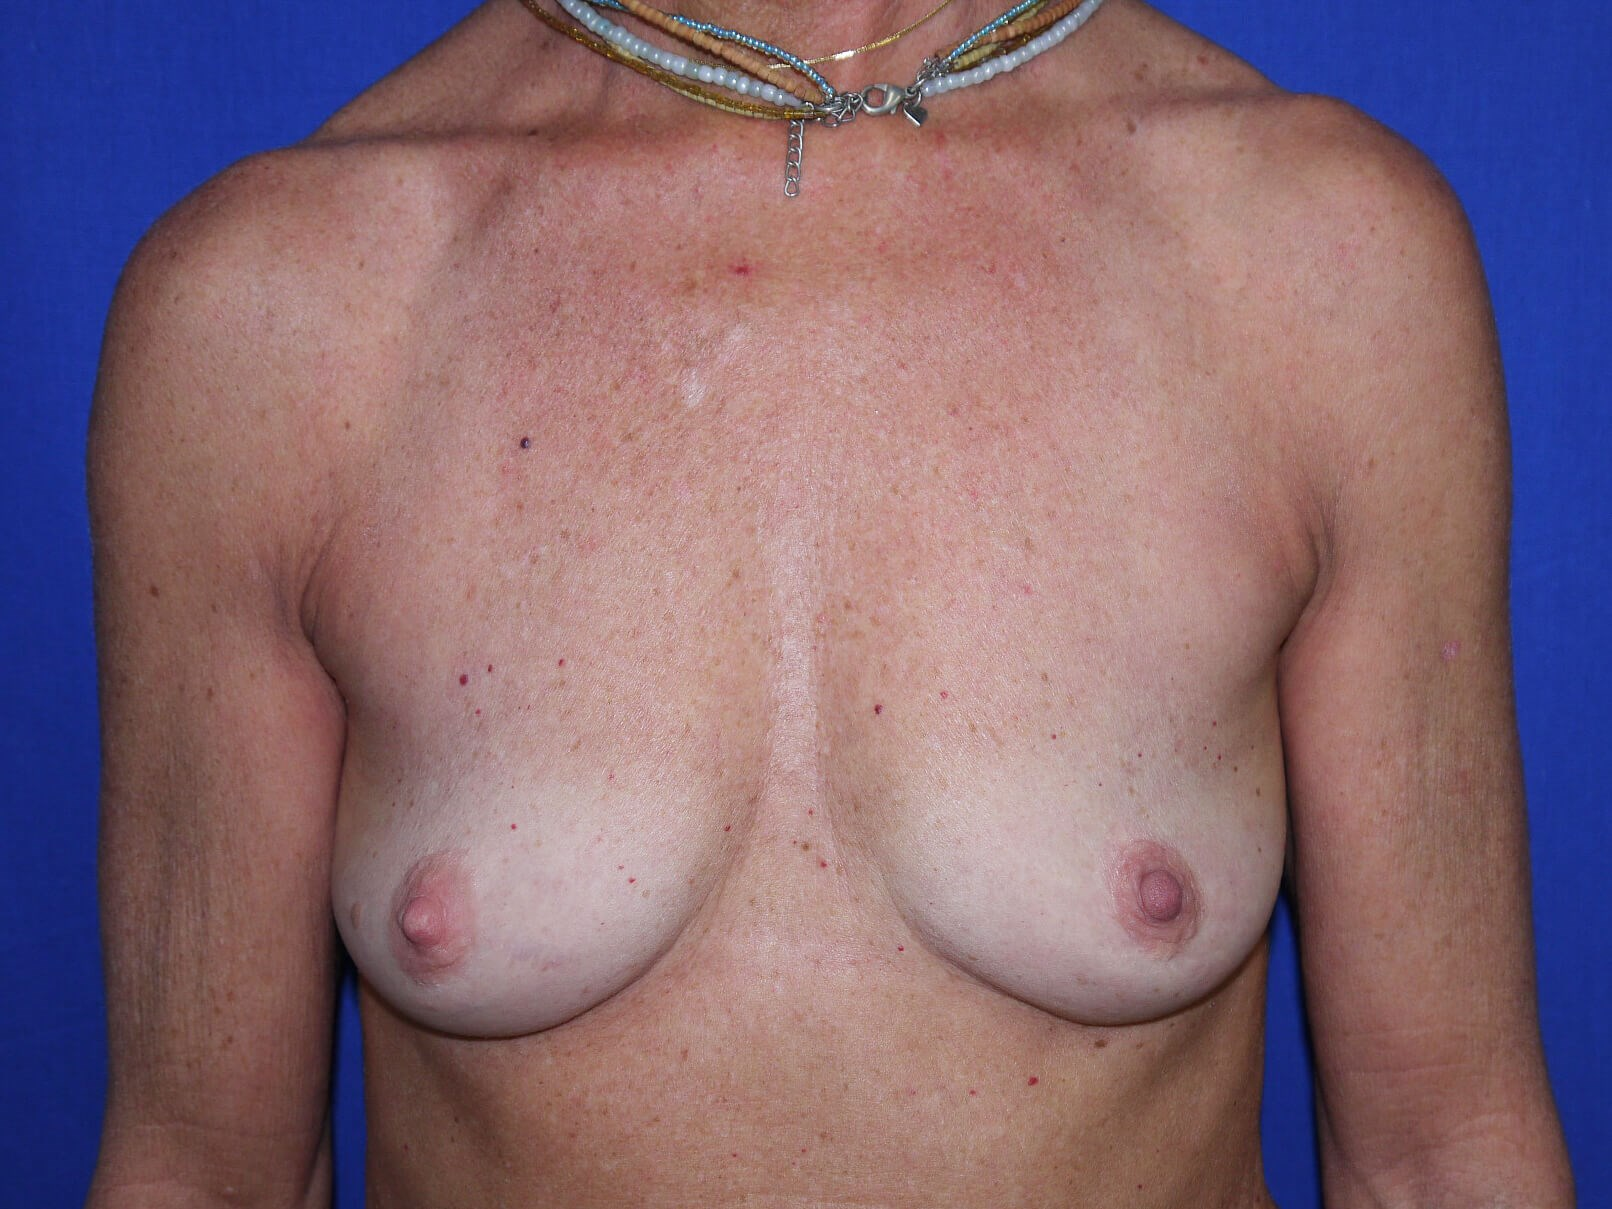 Breast Augmentation Results Before Implants